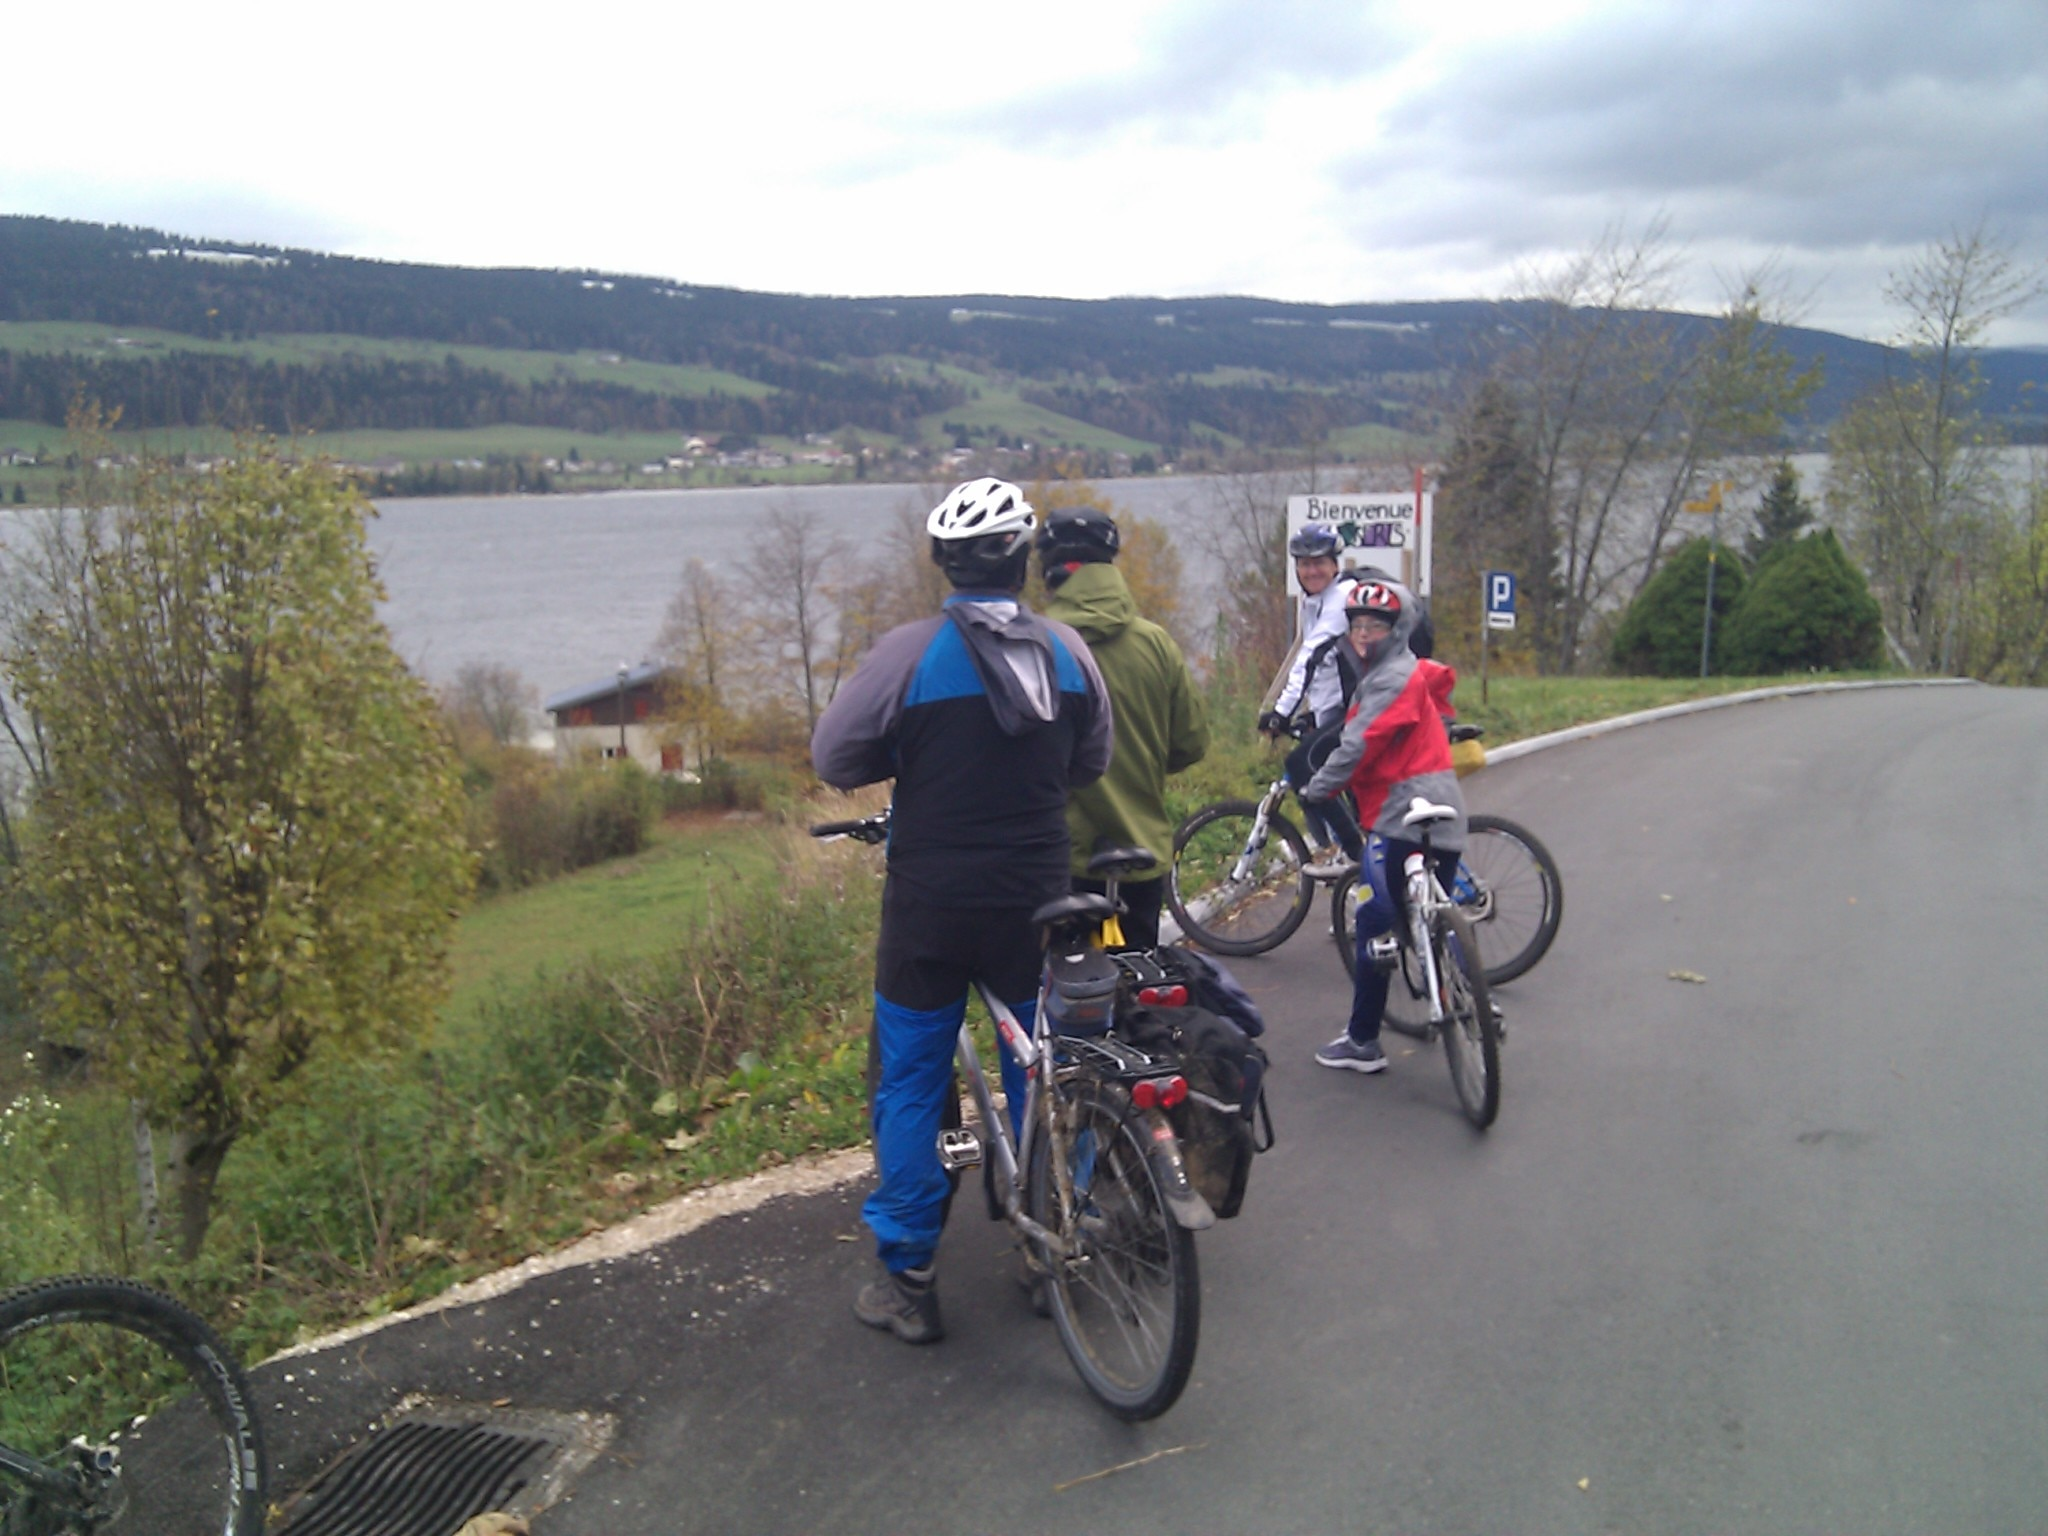 Stopping at an overlook near the shore of Lac de Joux.